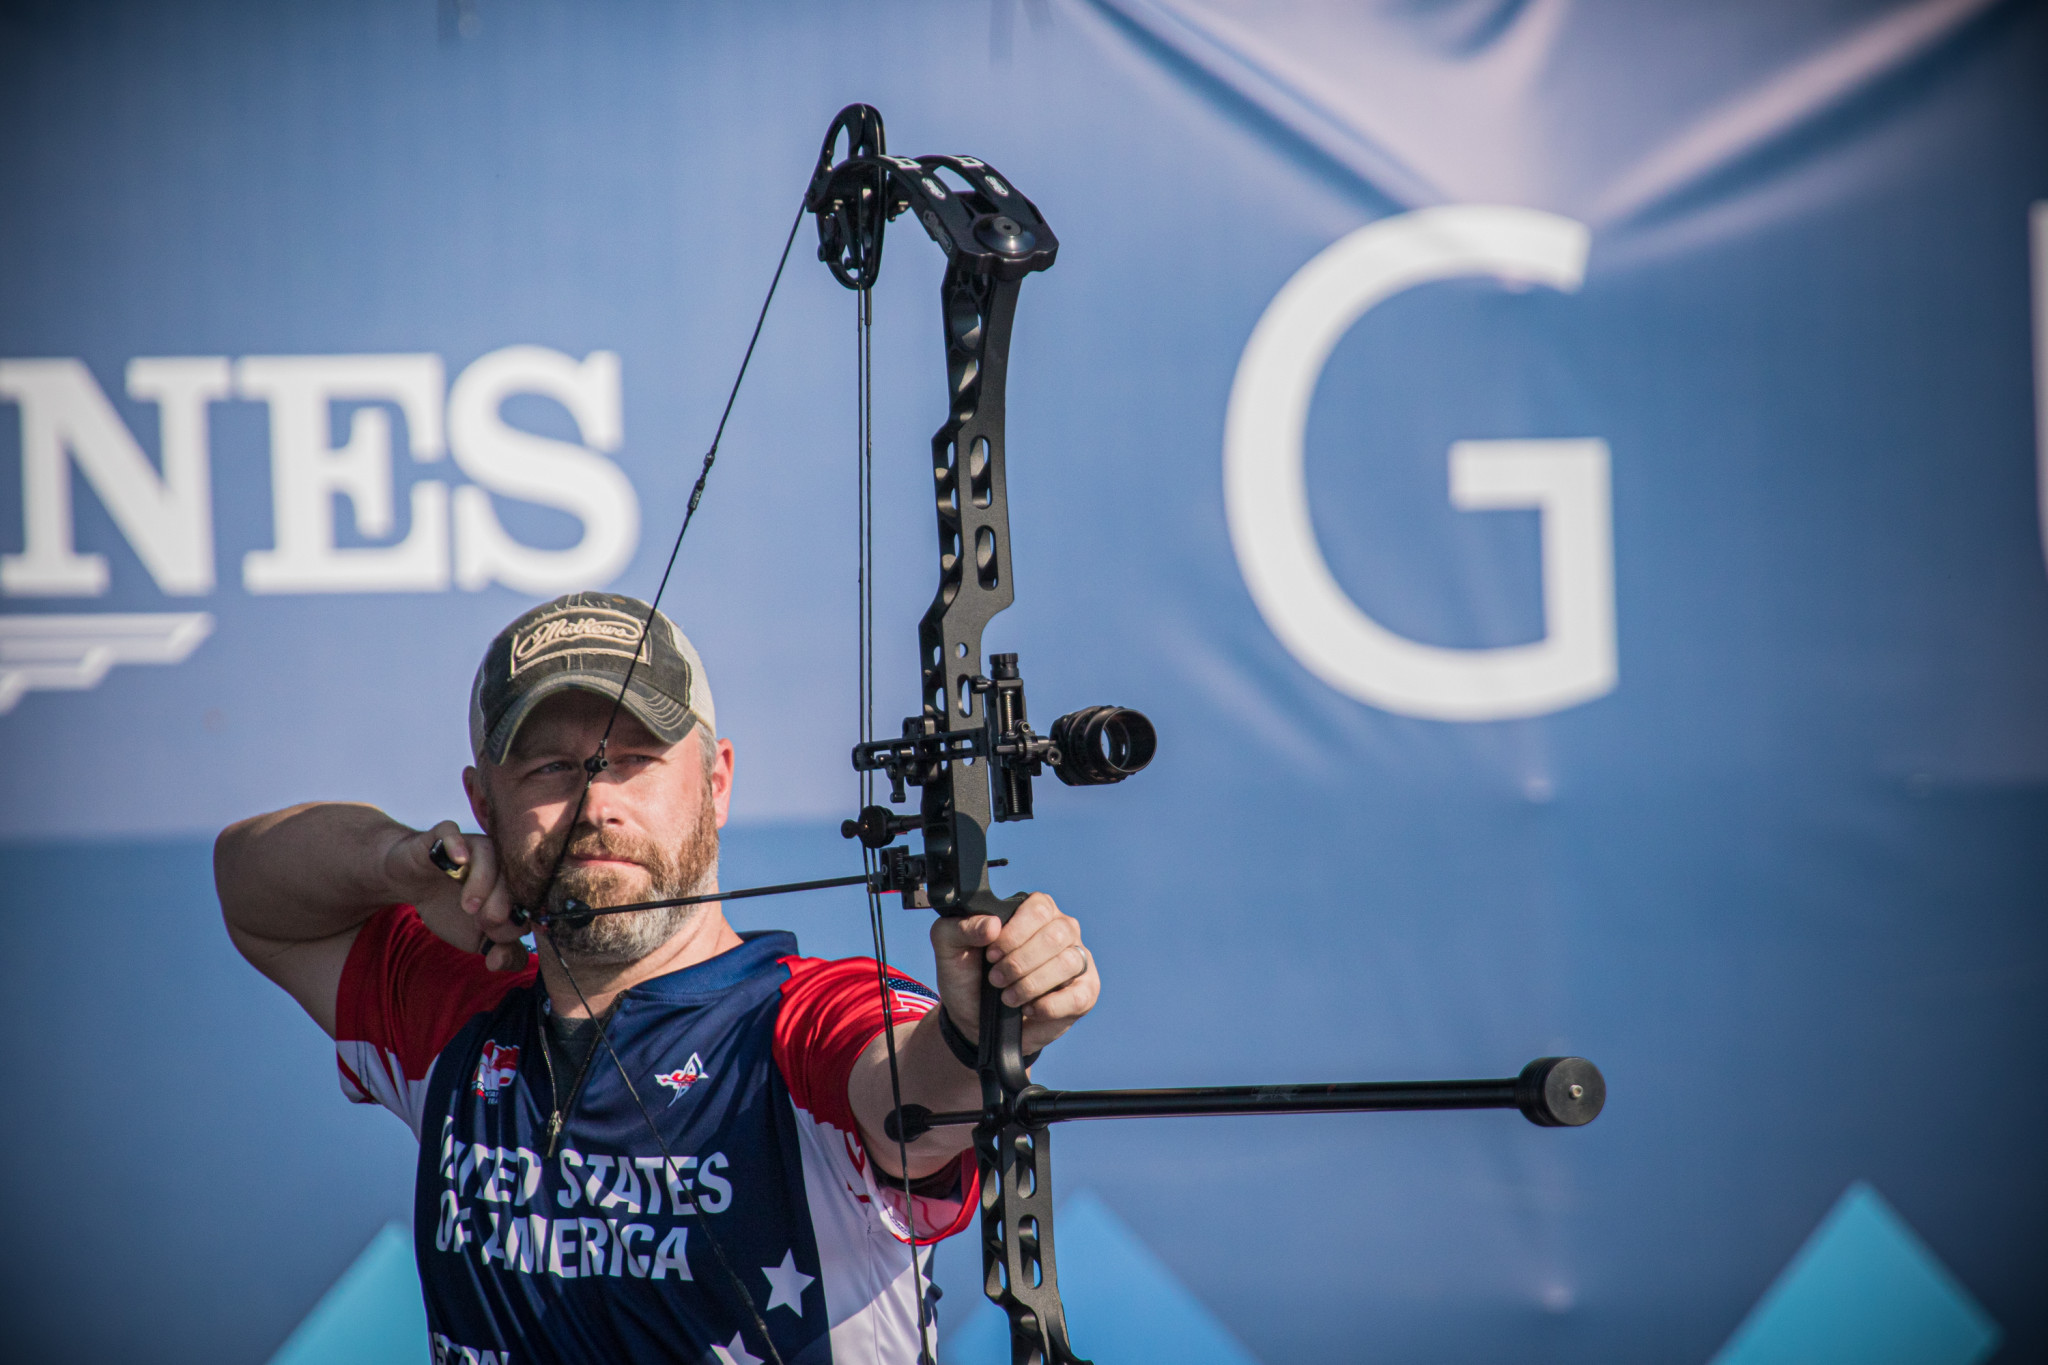 Yankton hub to host 2021 Archery World Cup Final in September